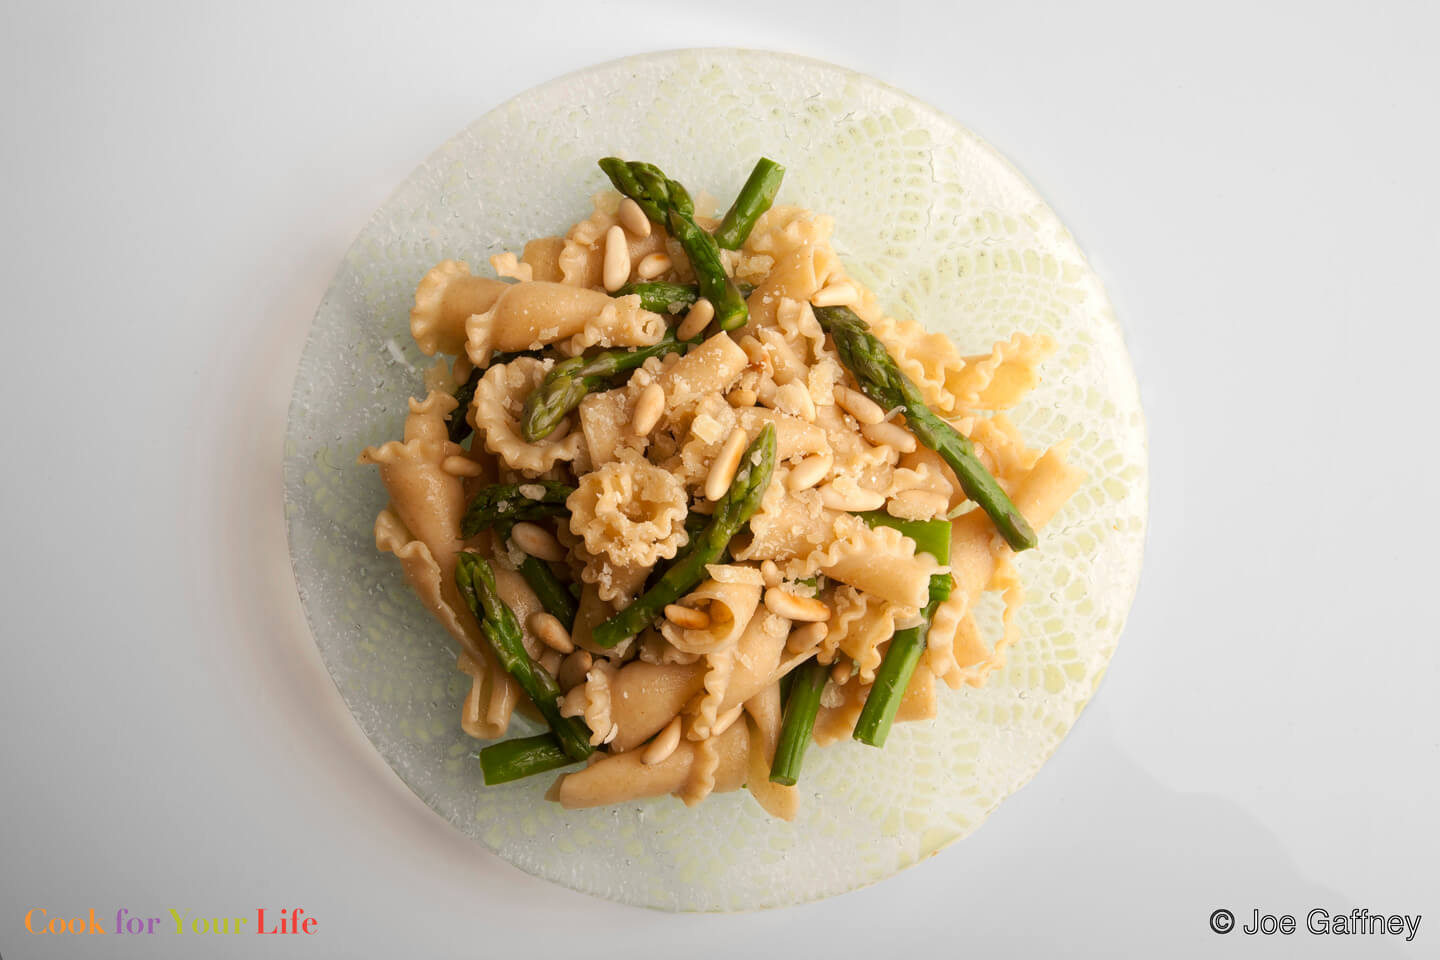 asparagus, pine nuts, whole wheat pasta - anti-cancer recipes - Cook For Your Life- Asparagus & Pine Nut Pasta